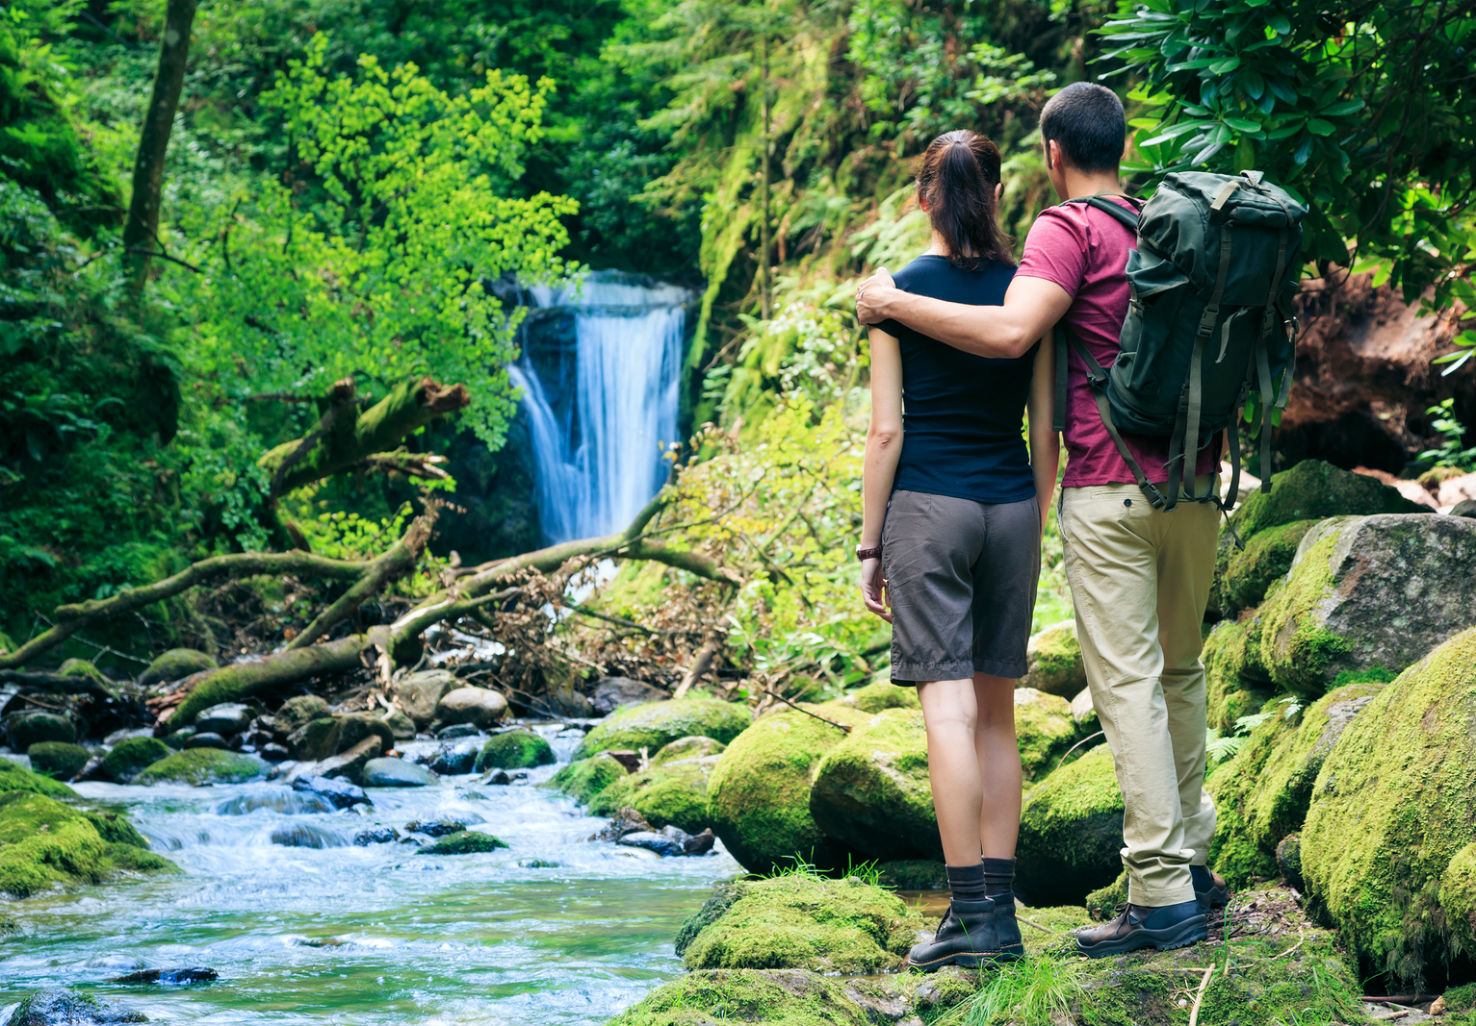 Couple goes for riverside hike together